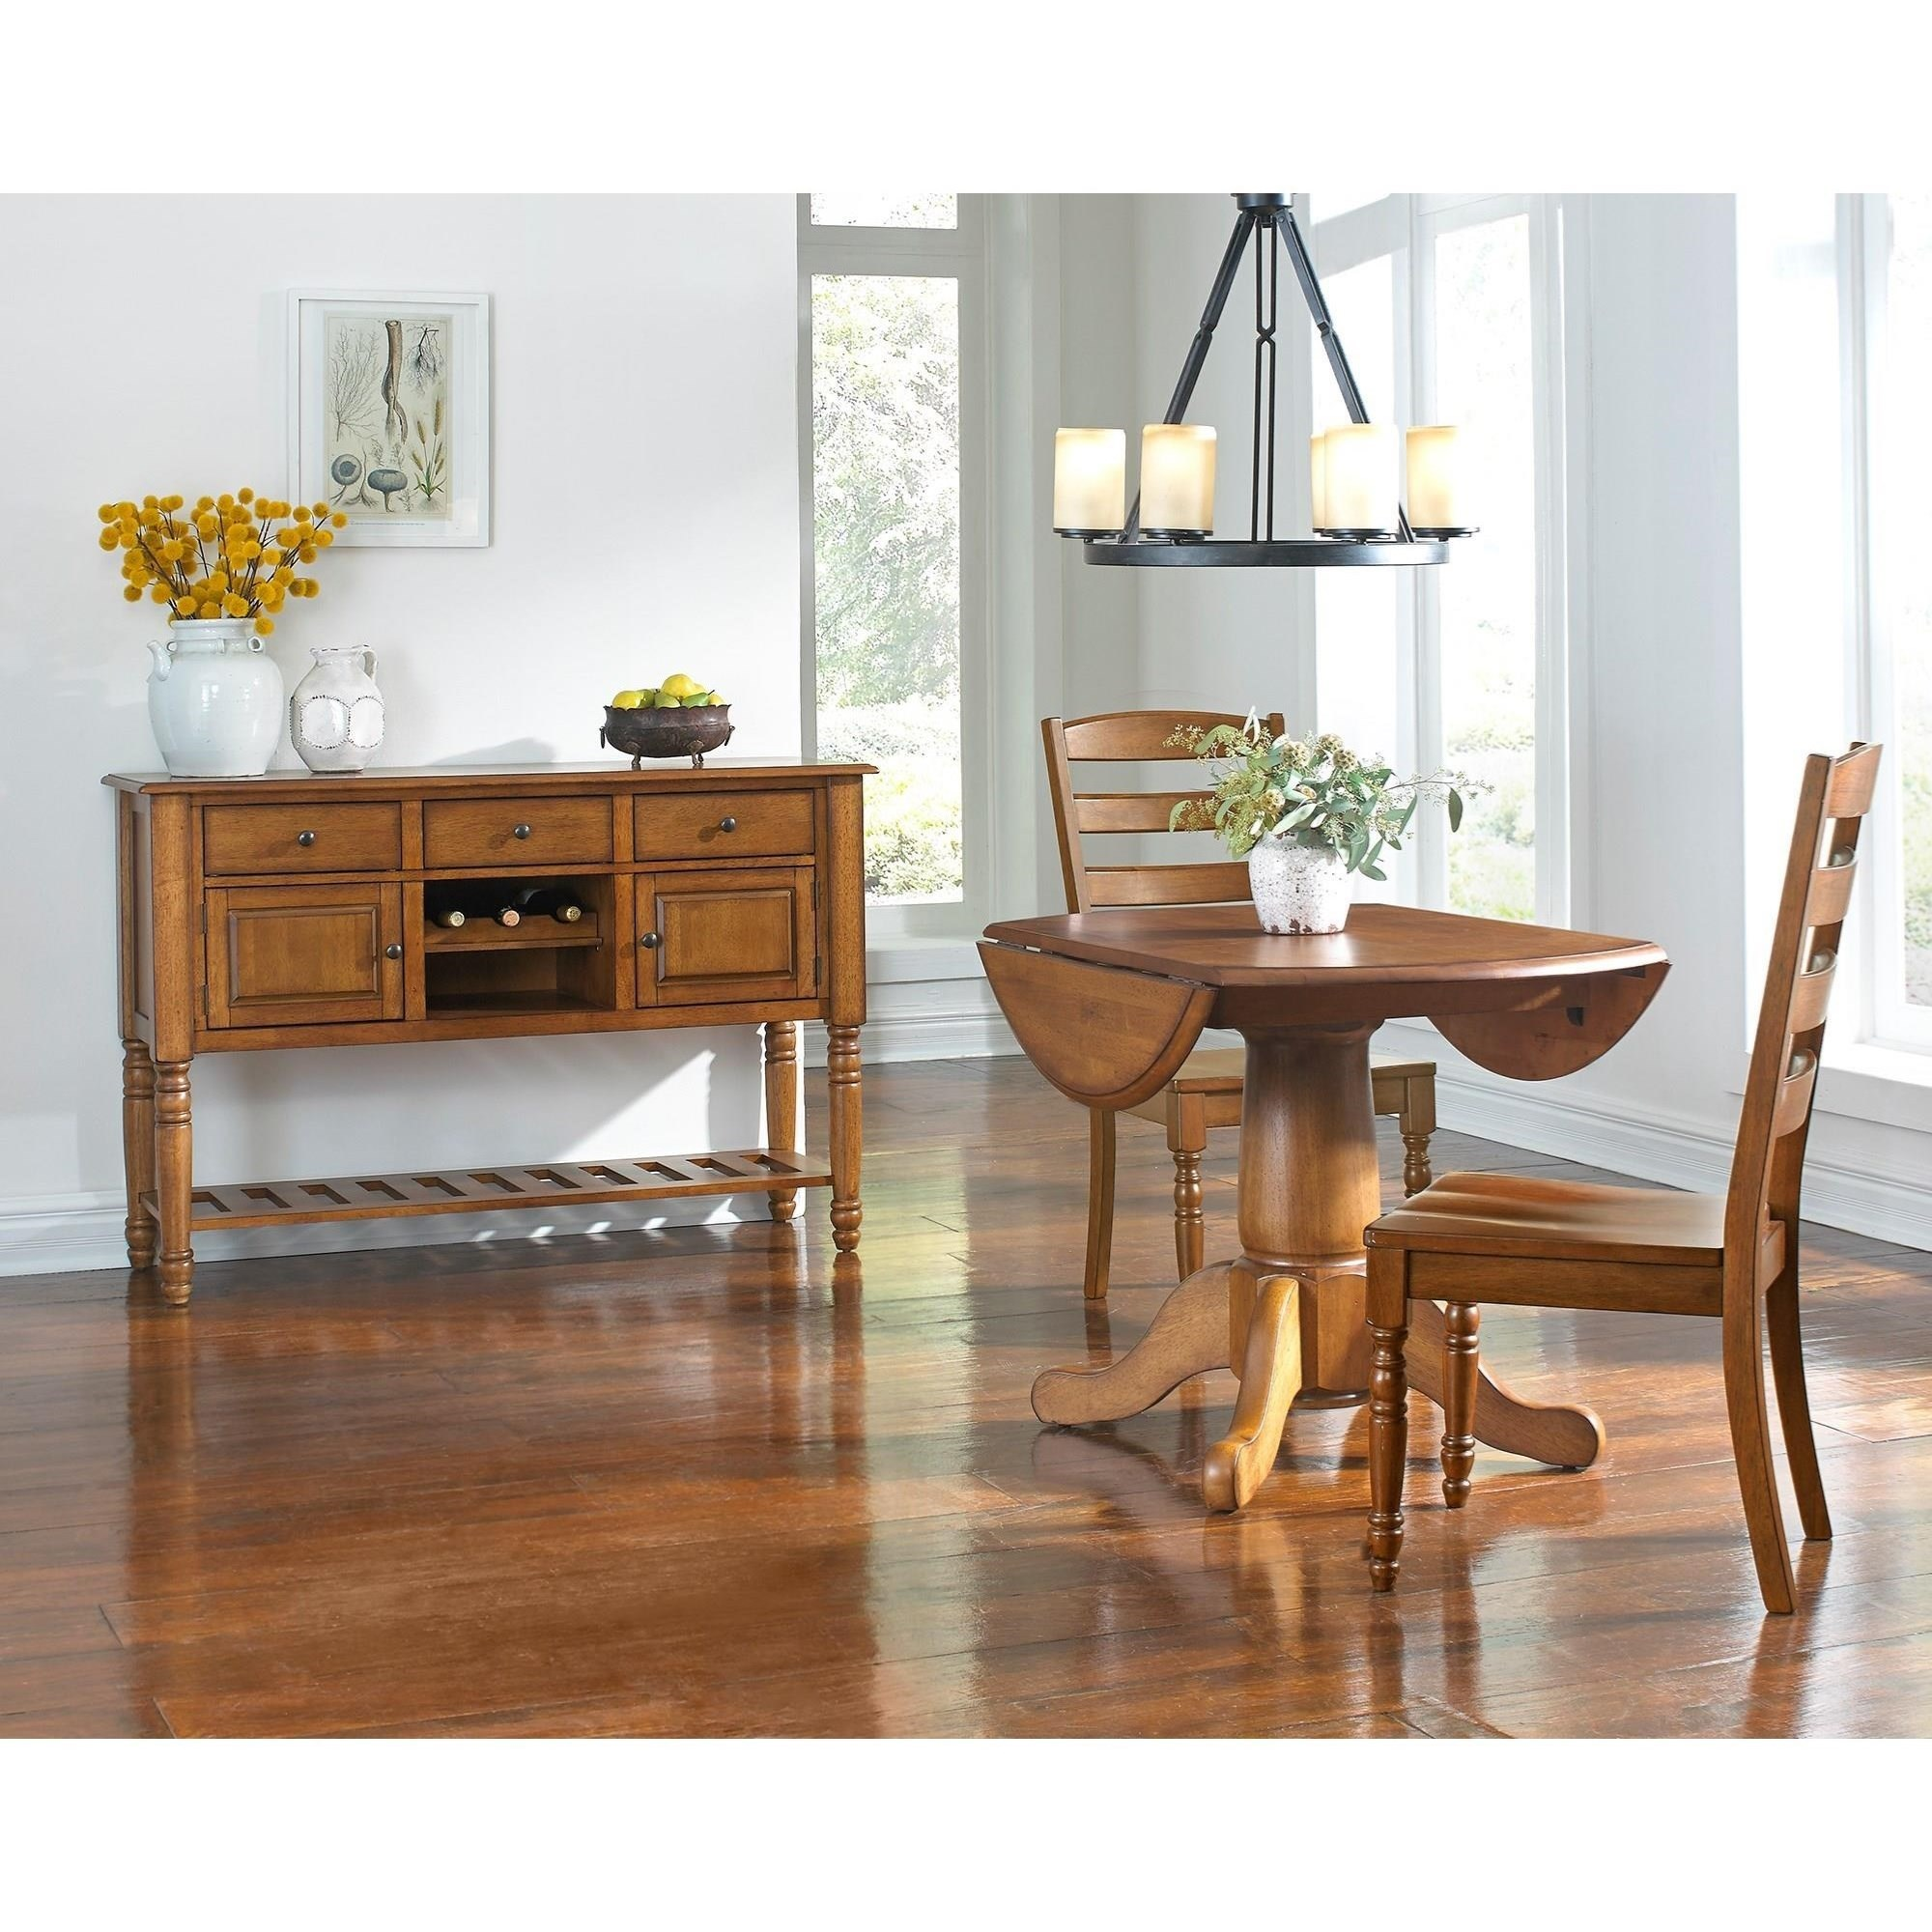 AAmerica Roanoke Casual Dining Room Group - Item Number: ROA-RH Dining Room Group 1